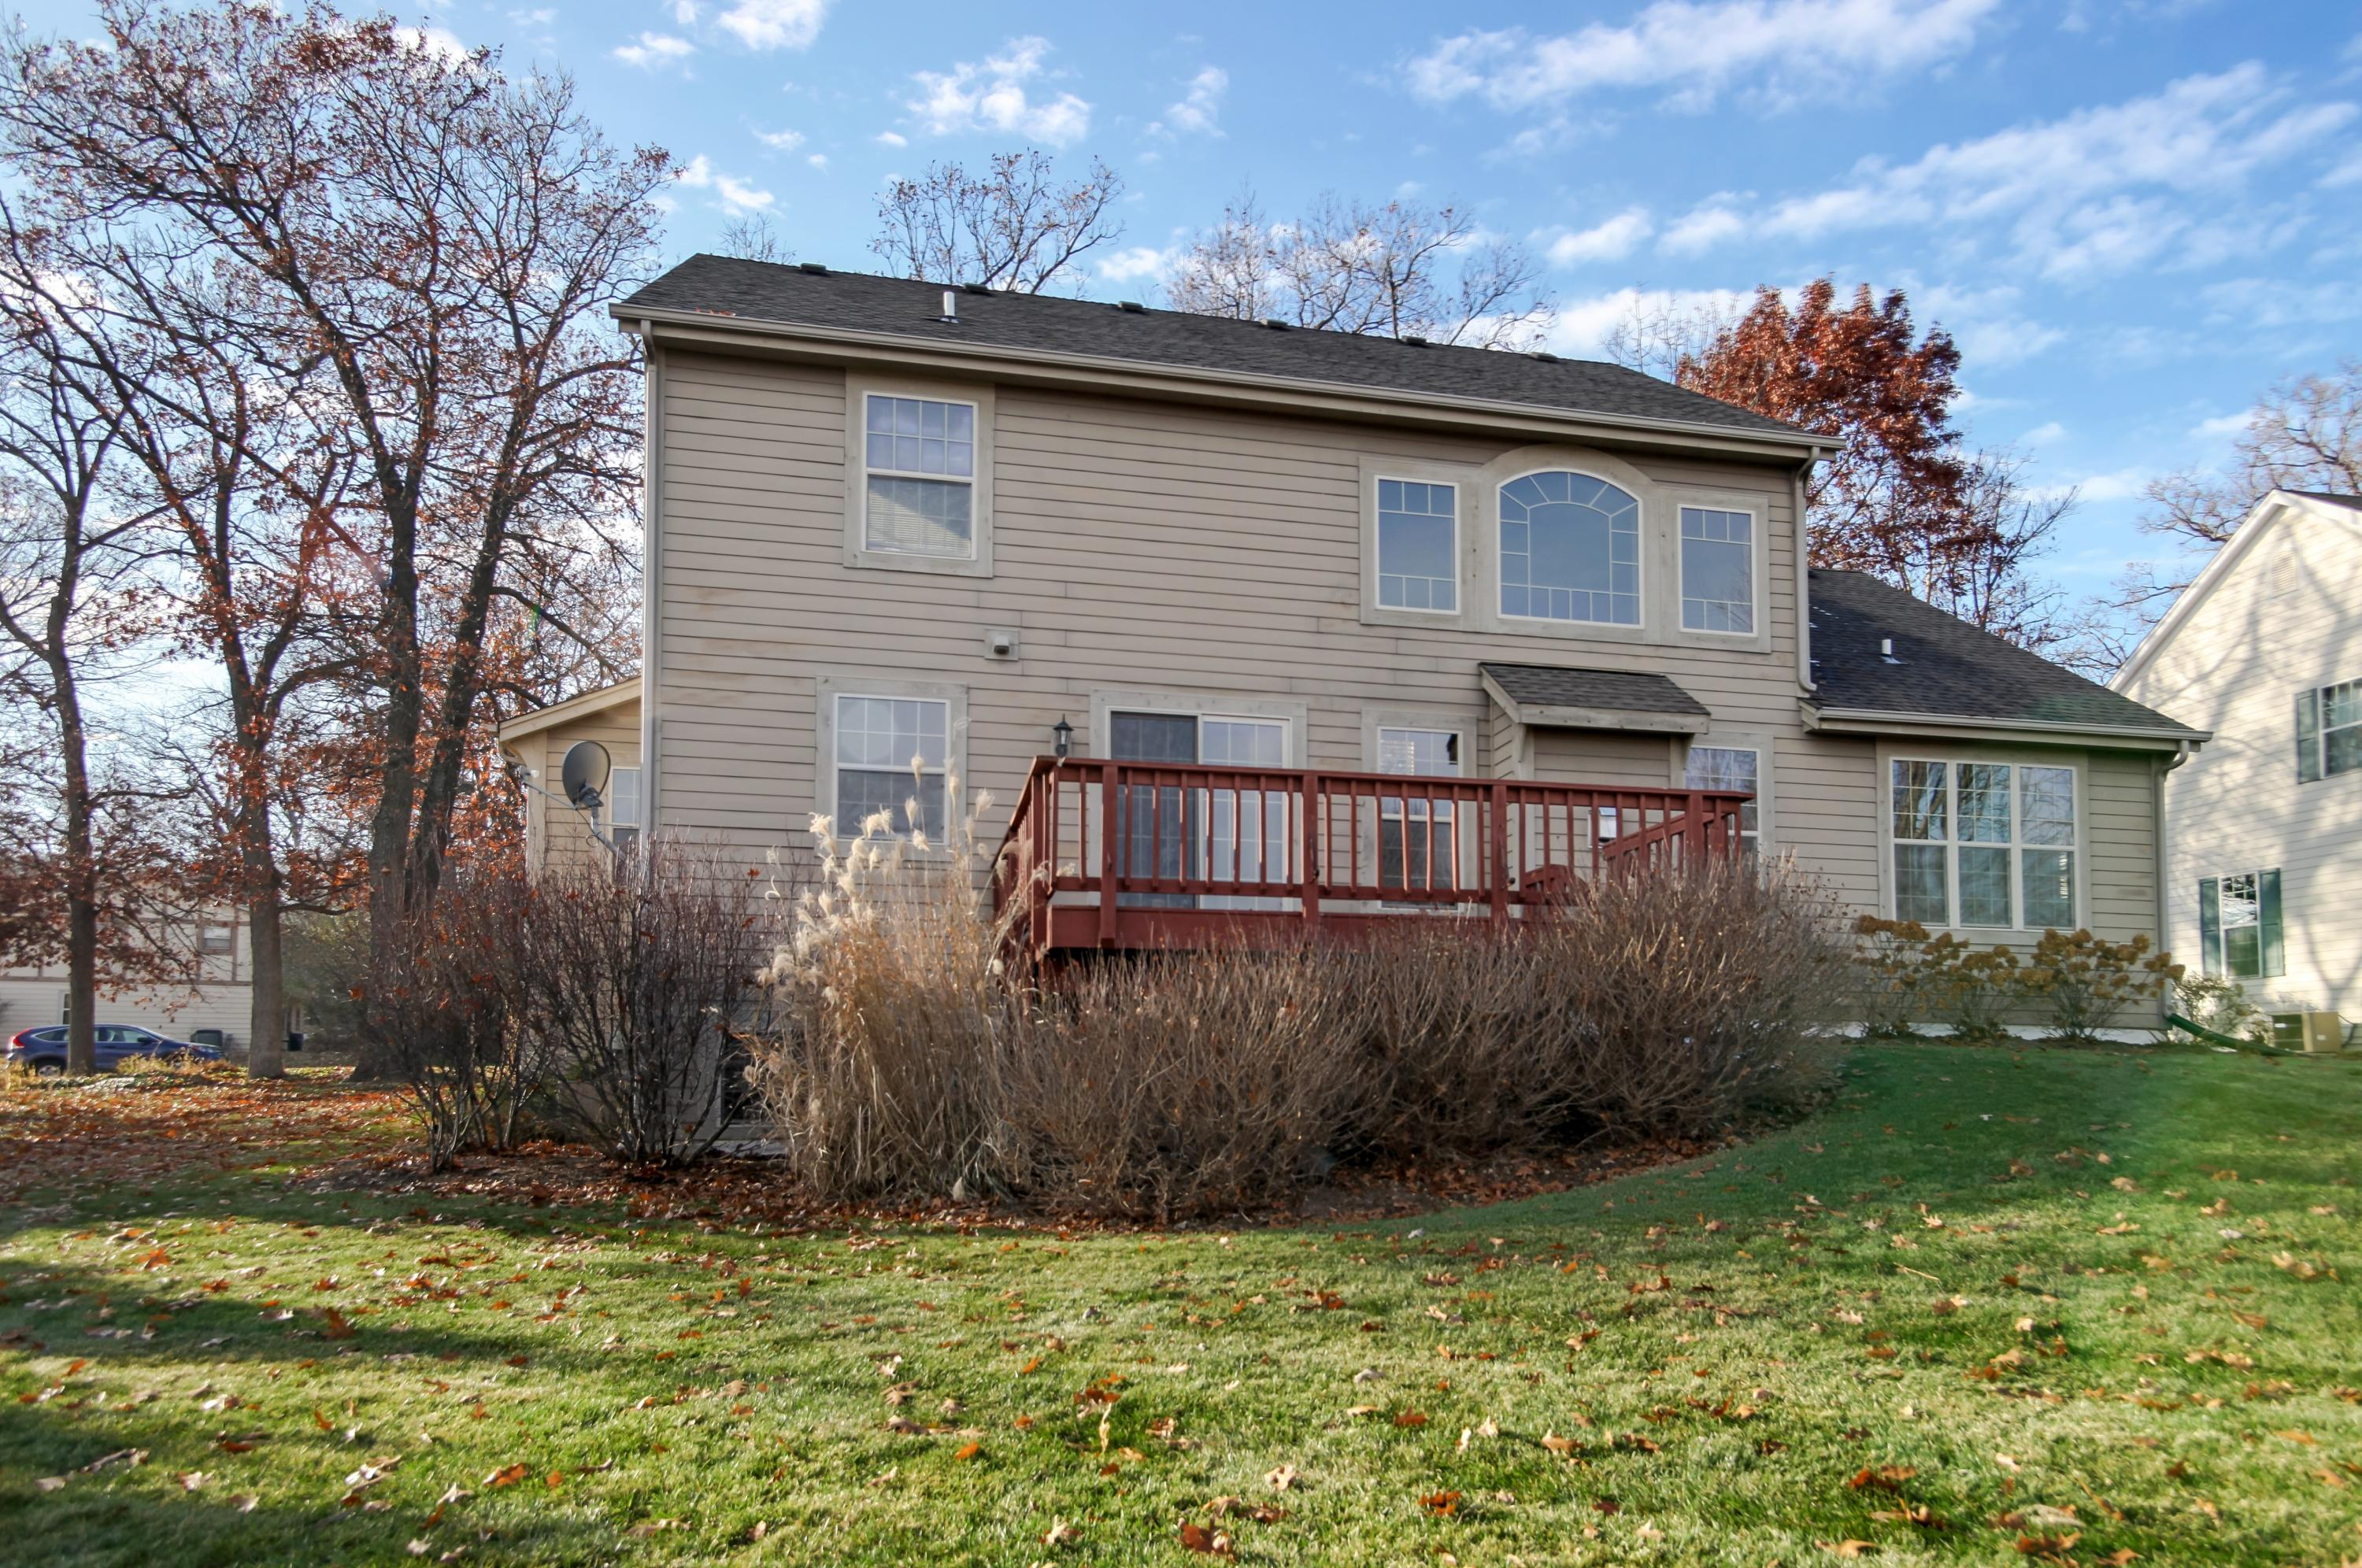 740 Winston Way, Hartland, Wisconsin 53029, 4 Bedrooms Bedrooms, 9 Rooms Rooms,3 BathroomsBathrooms,Single-Family,For Sale,Winston Way,1614367